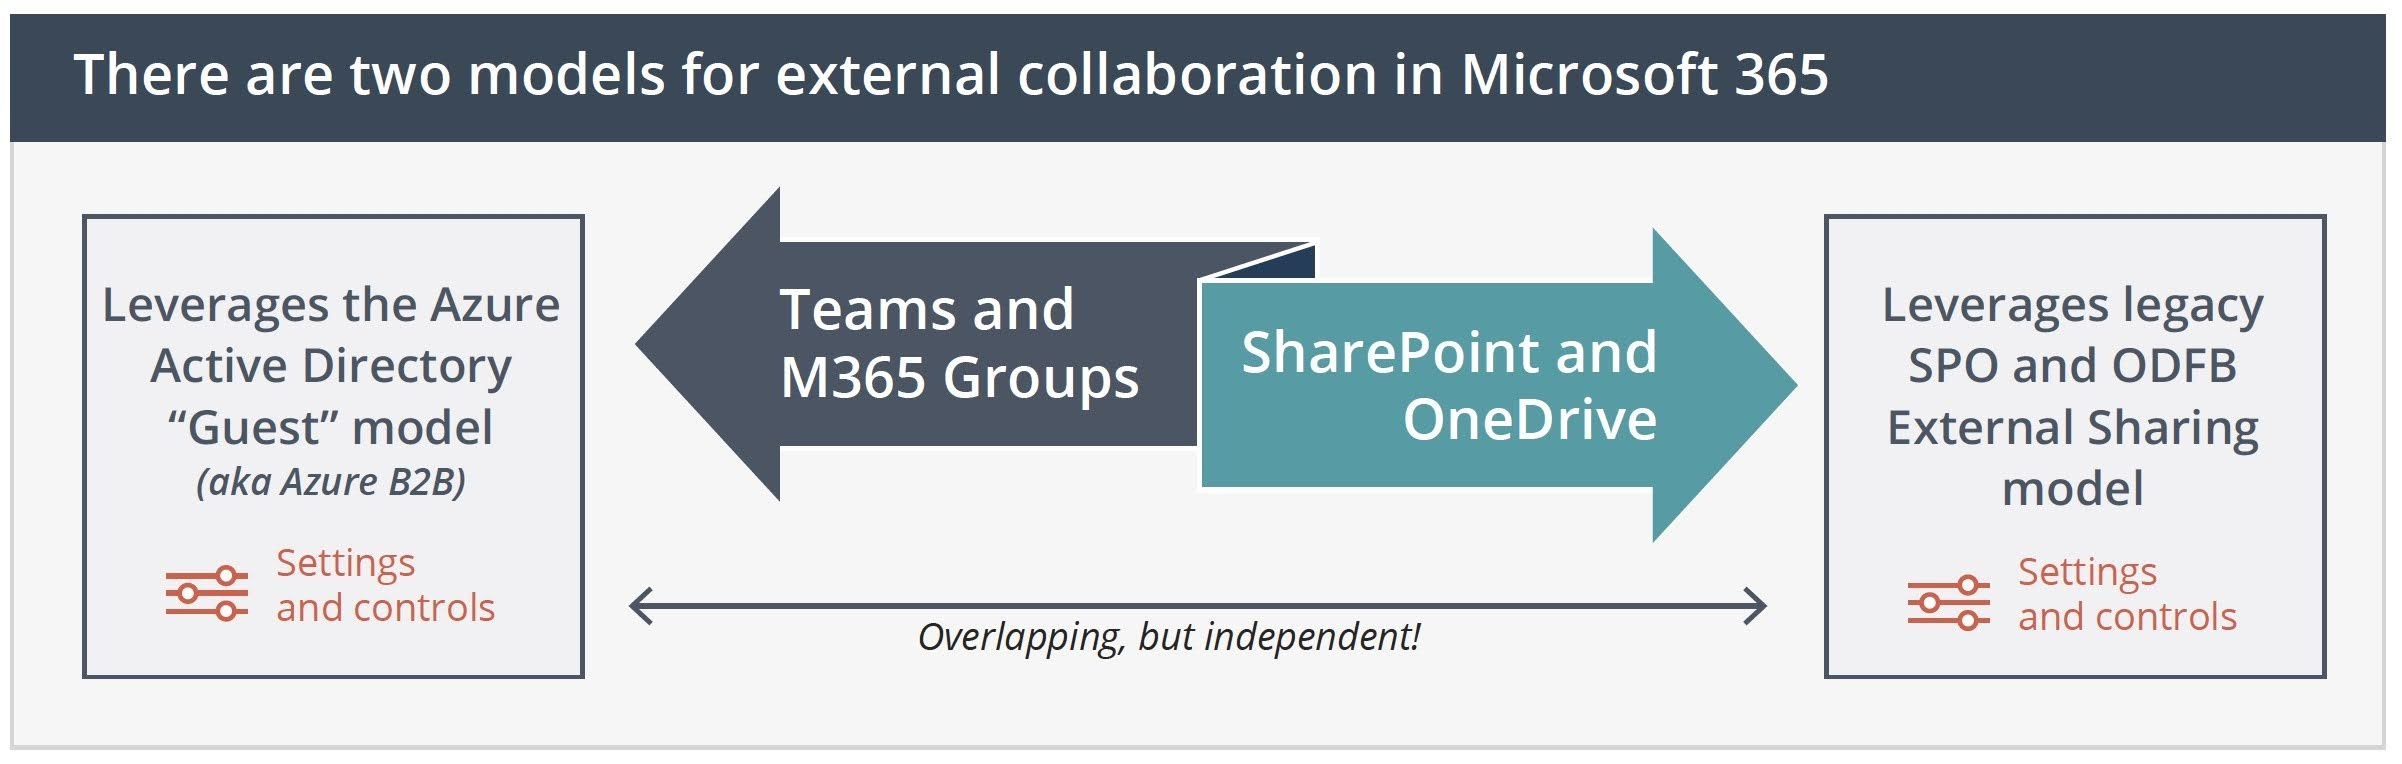 There are two models for external collaboration in Microsoft 365.